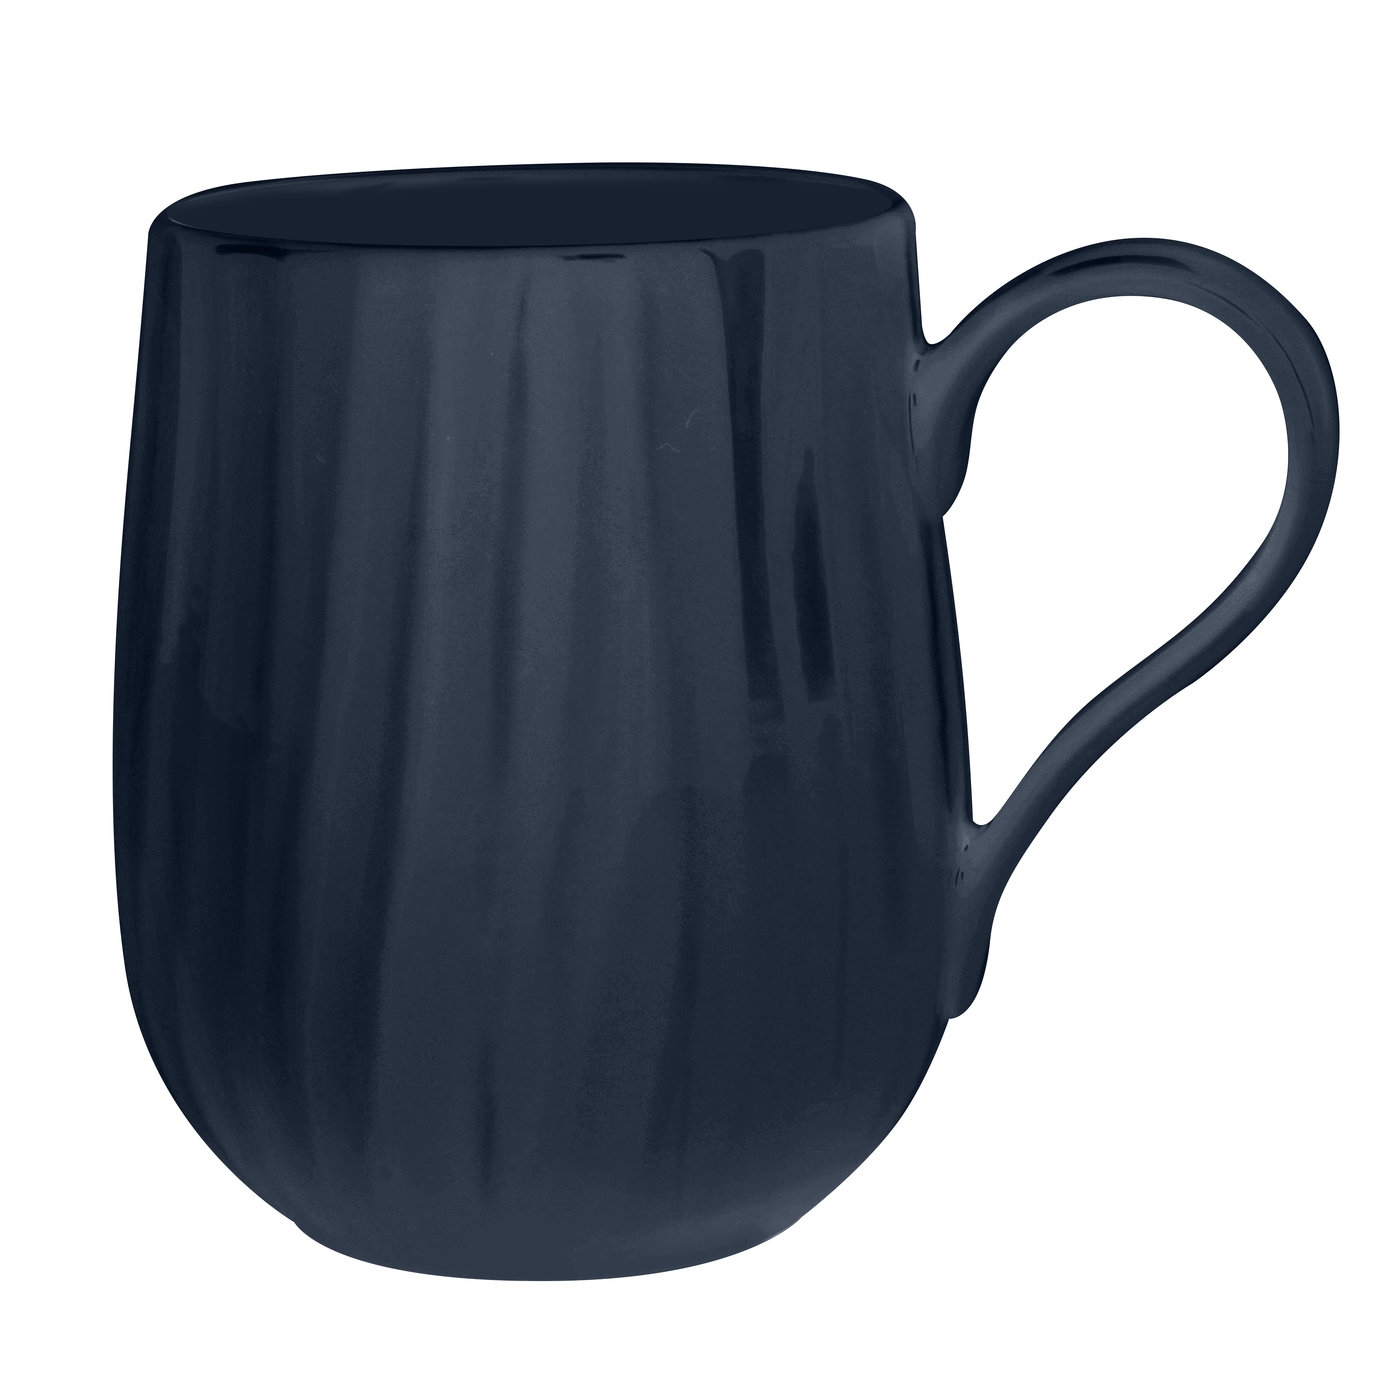 Sophie Conran for Portmeirion Blue Oak 12 oz Mug image number 0